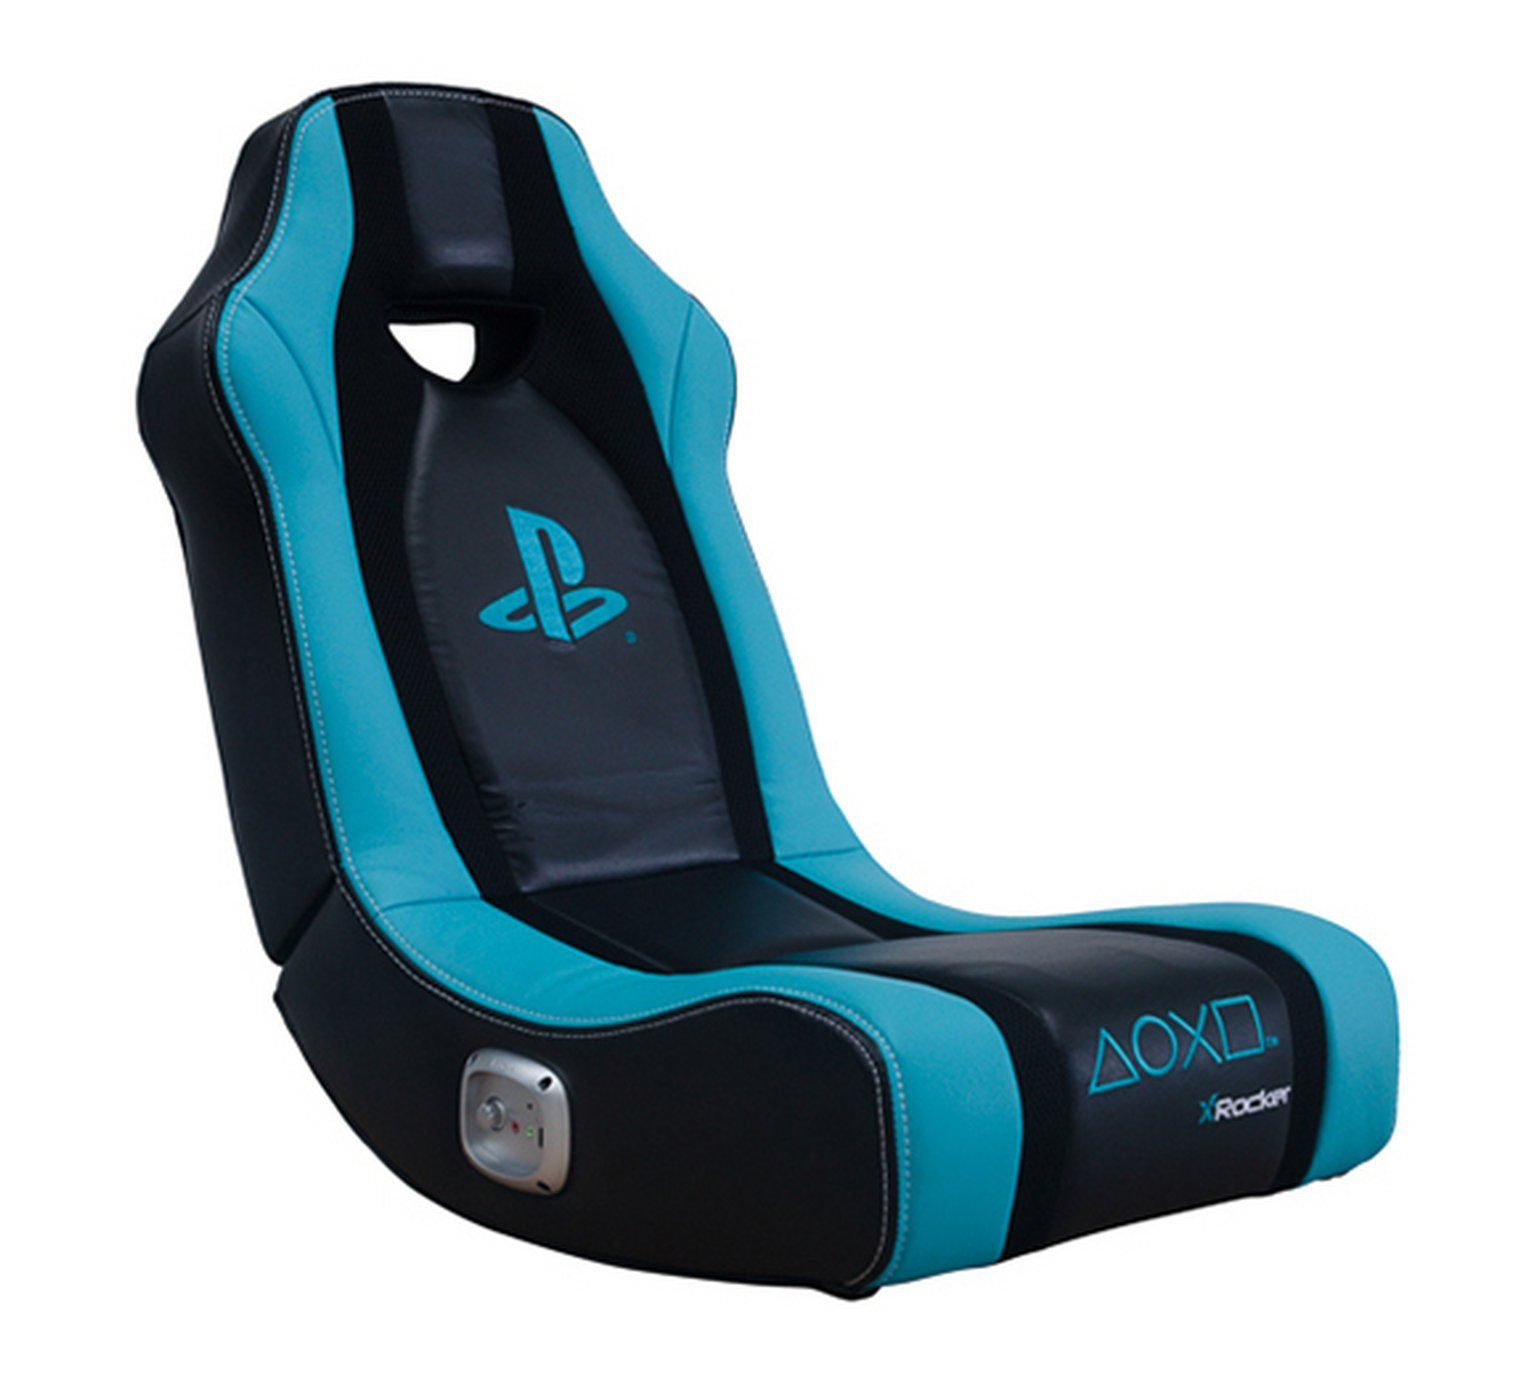 Buy X-Rocker Wraith Playstation Gaming Chair | Gaming chairs